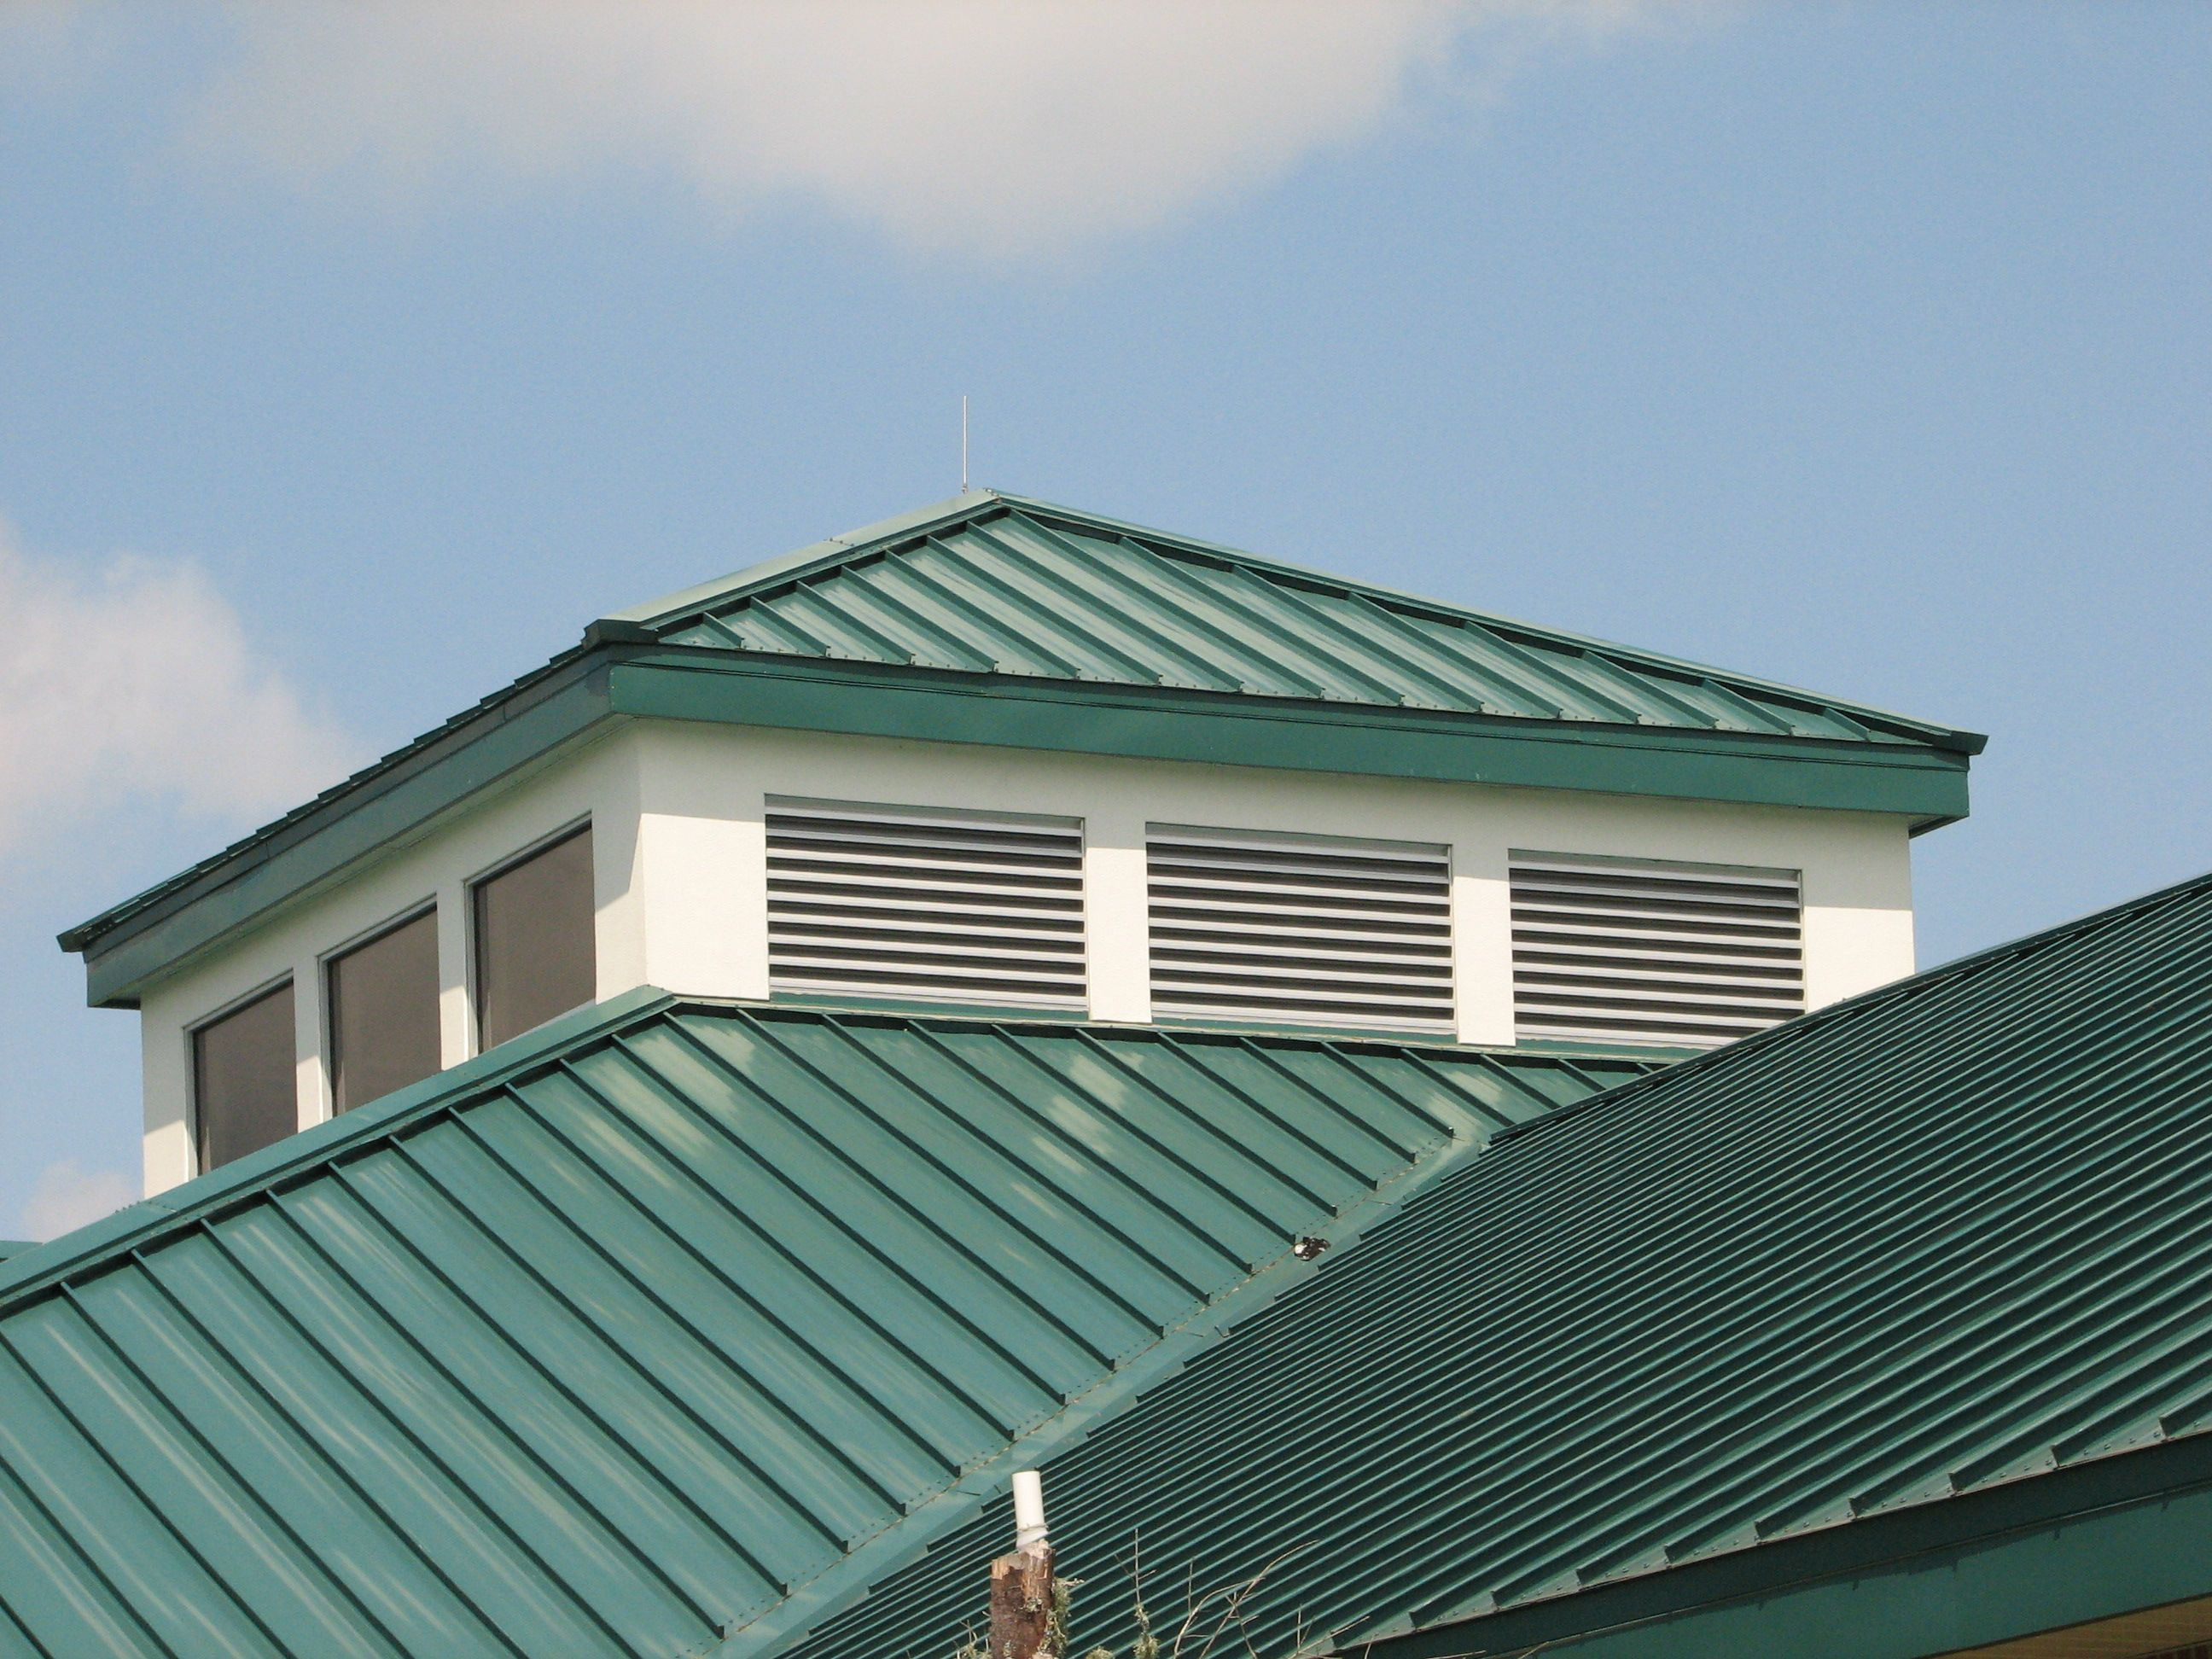 20 Roof Types For Your Awesome Homes Complete With The Pros Cons Corrugated Metal Roof Metal Roofing Materials Metal Roof